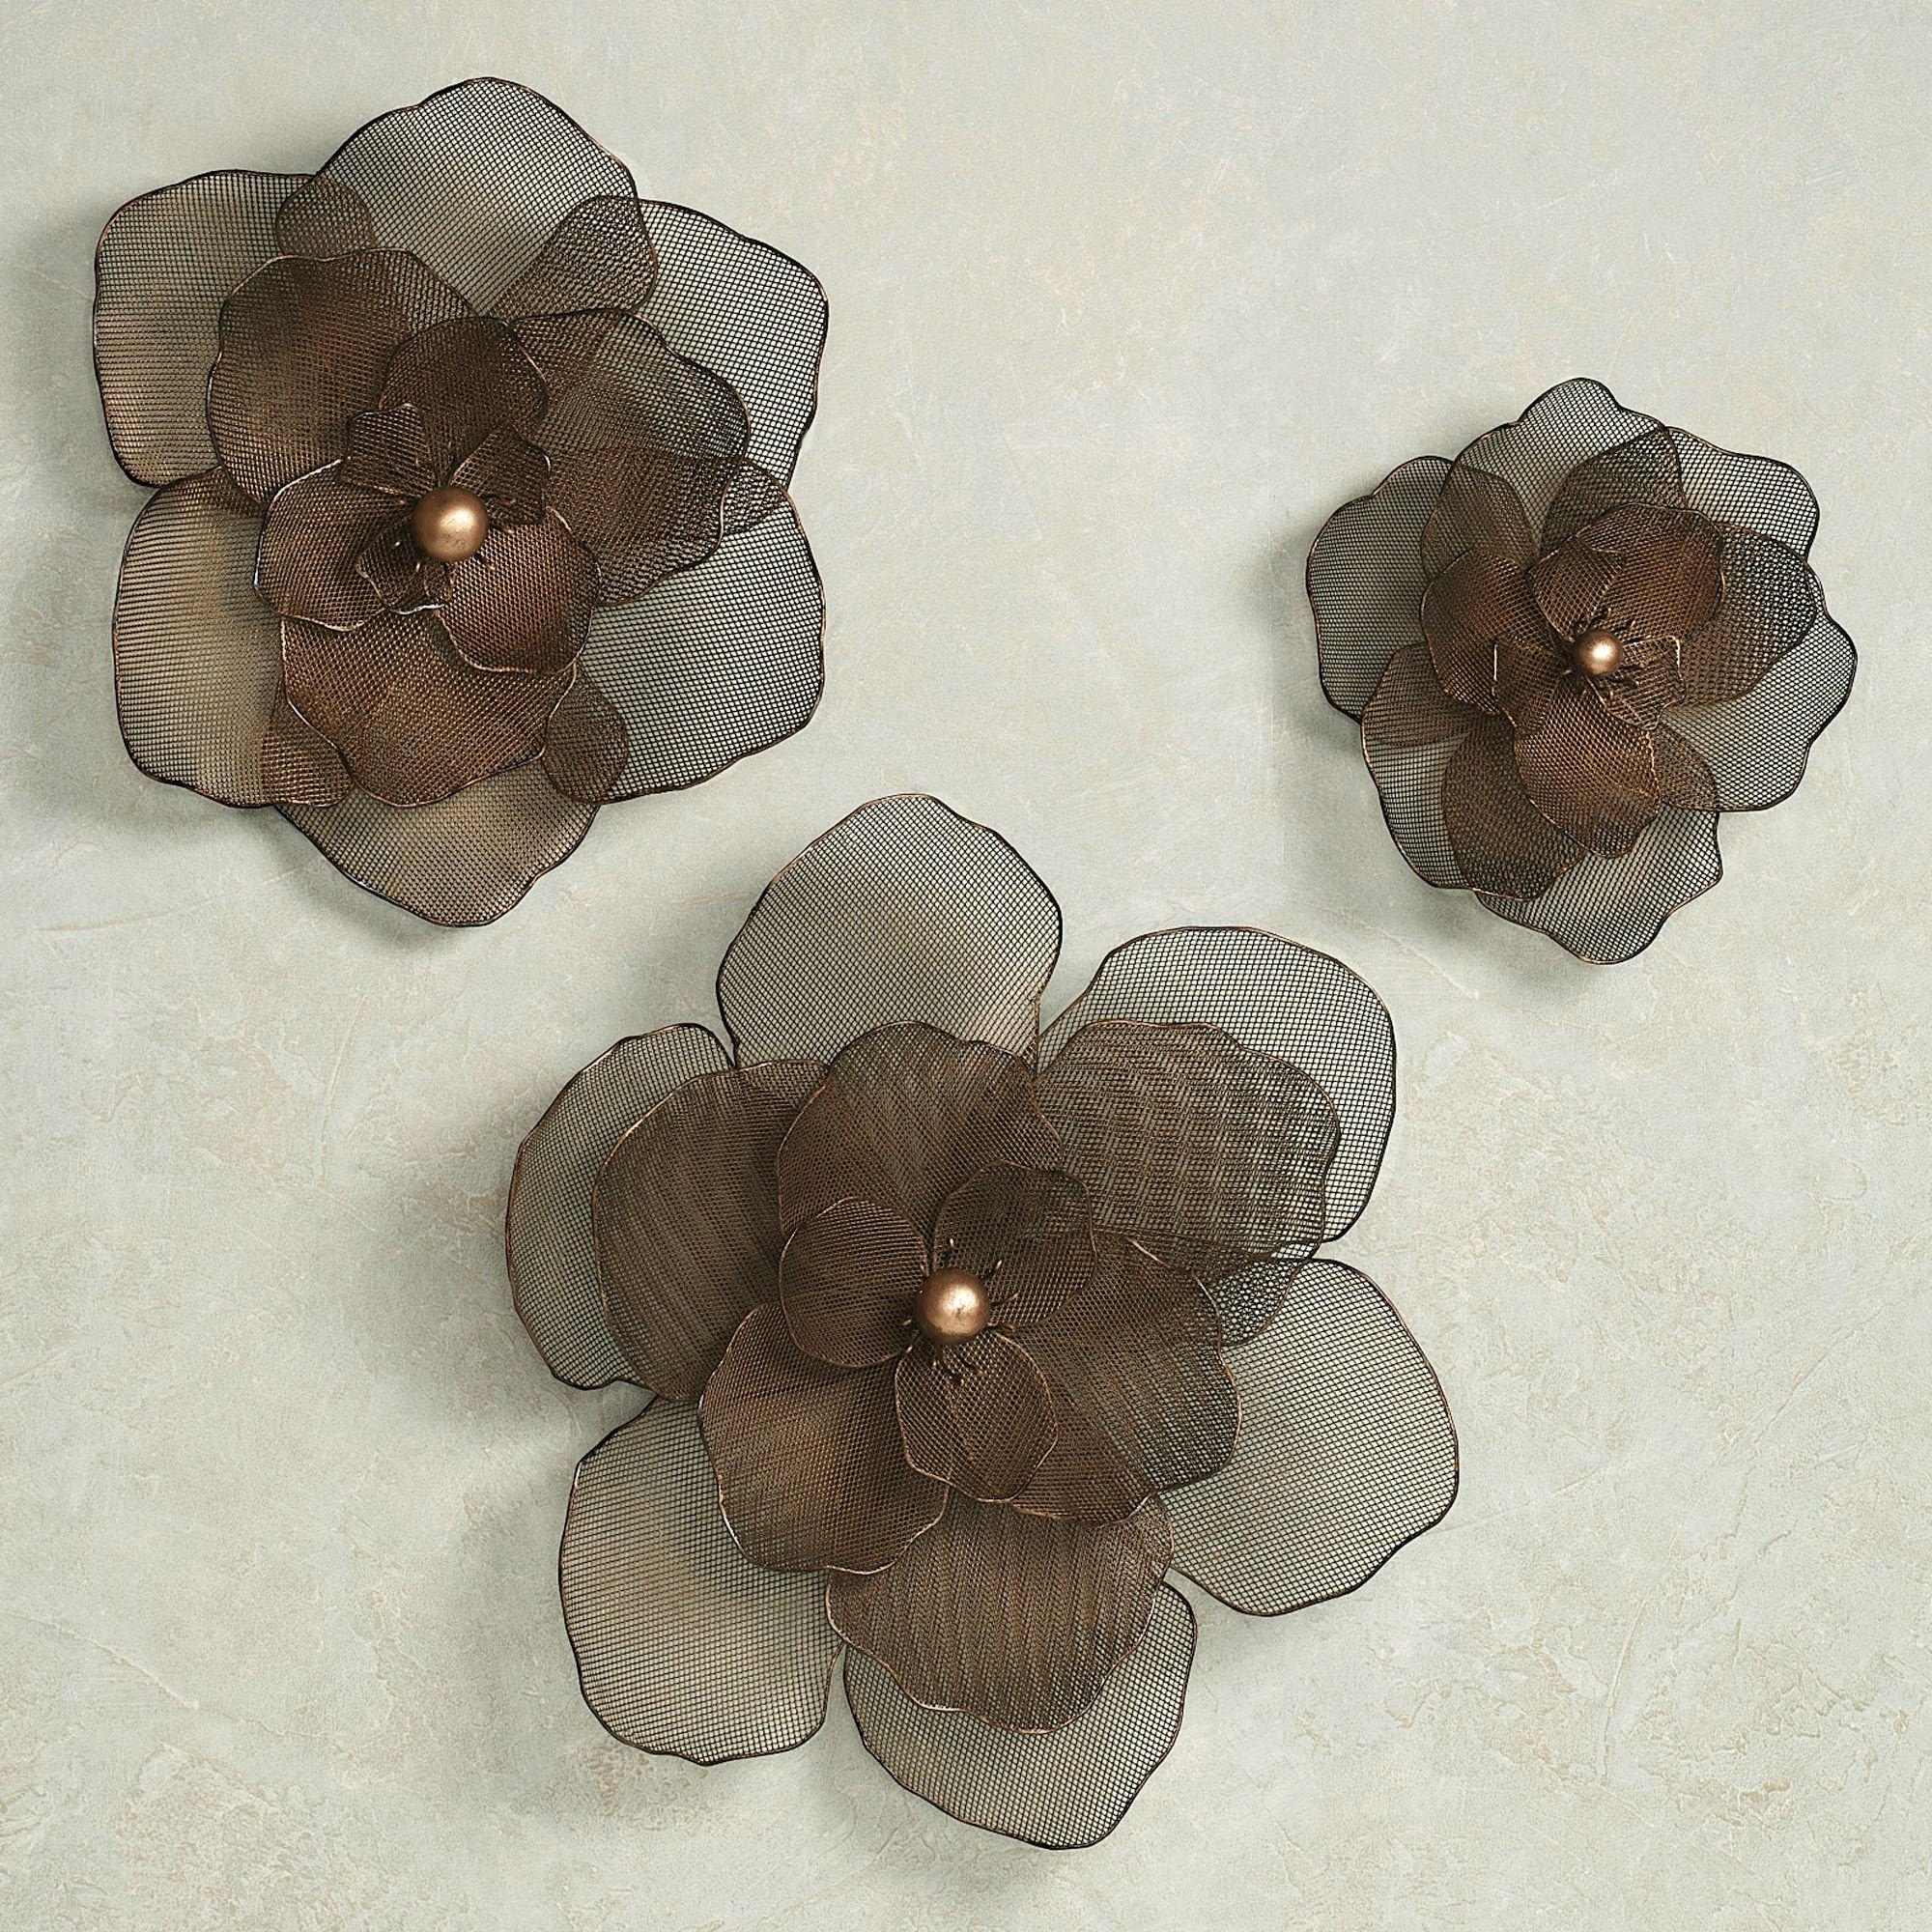 Asataire Flower Blossom Metal Wall Art Set Intended For Metallic Wall Art (View 14 of 20)